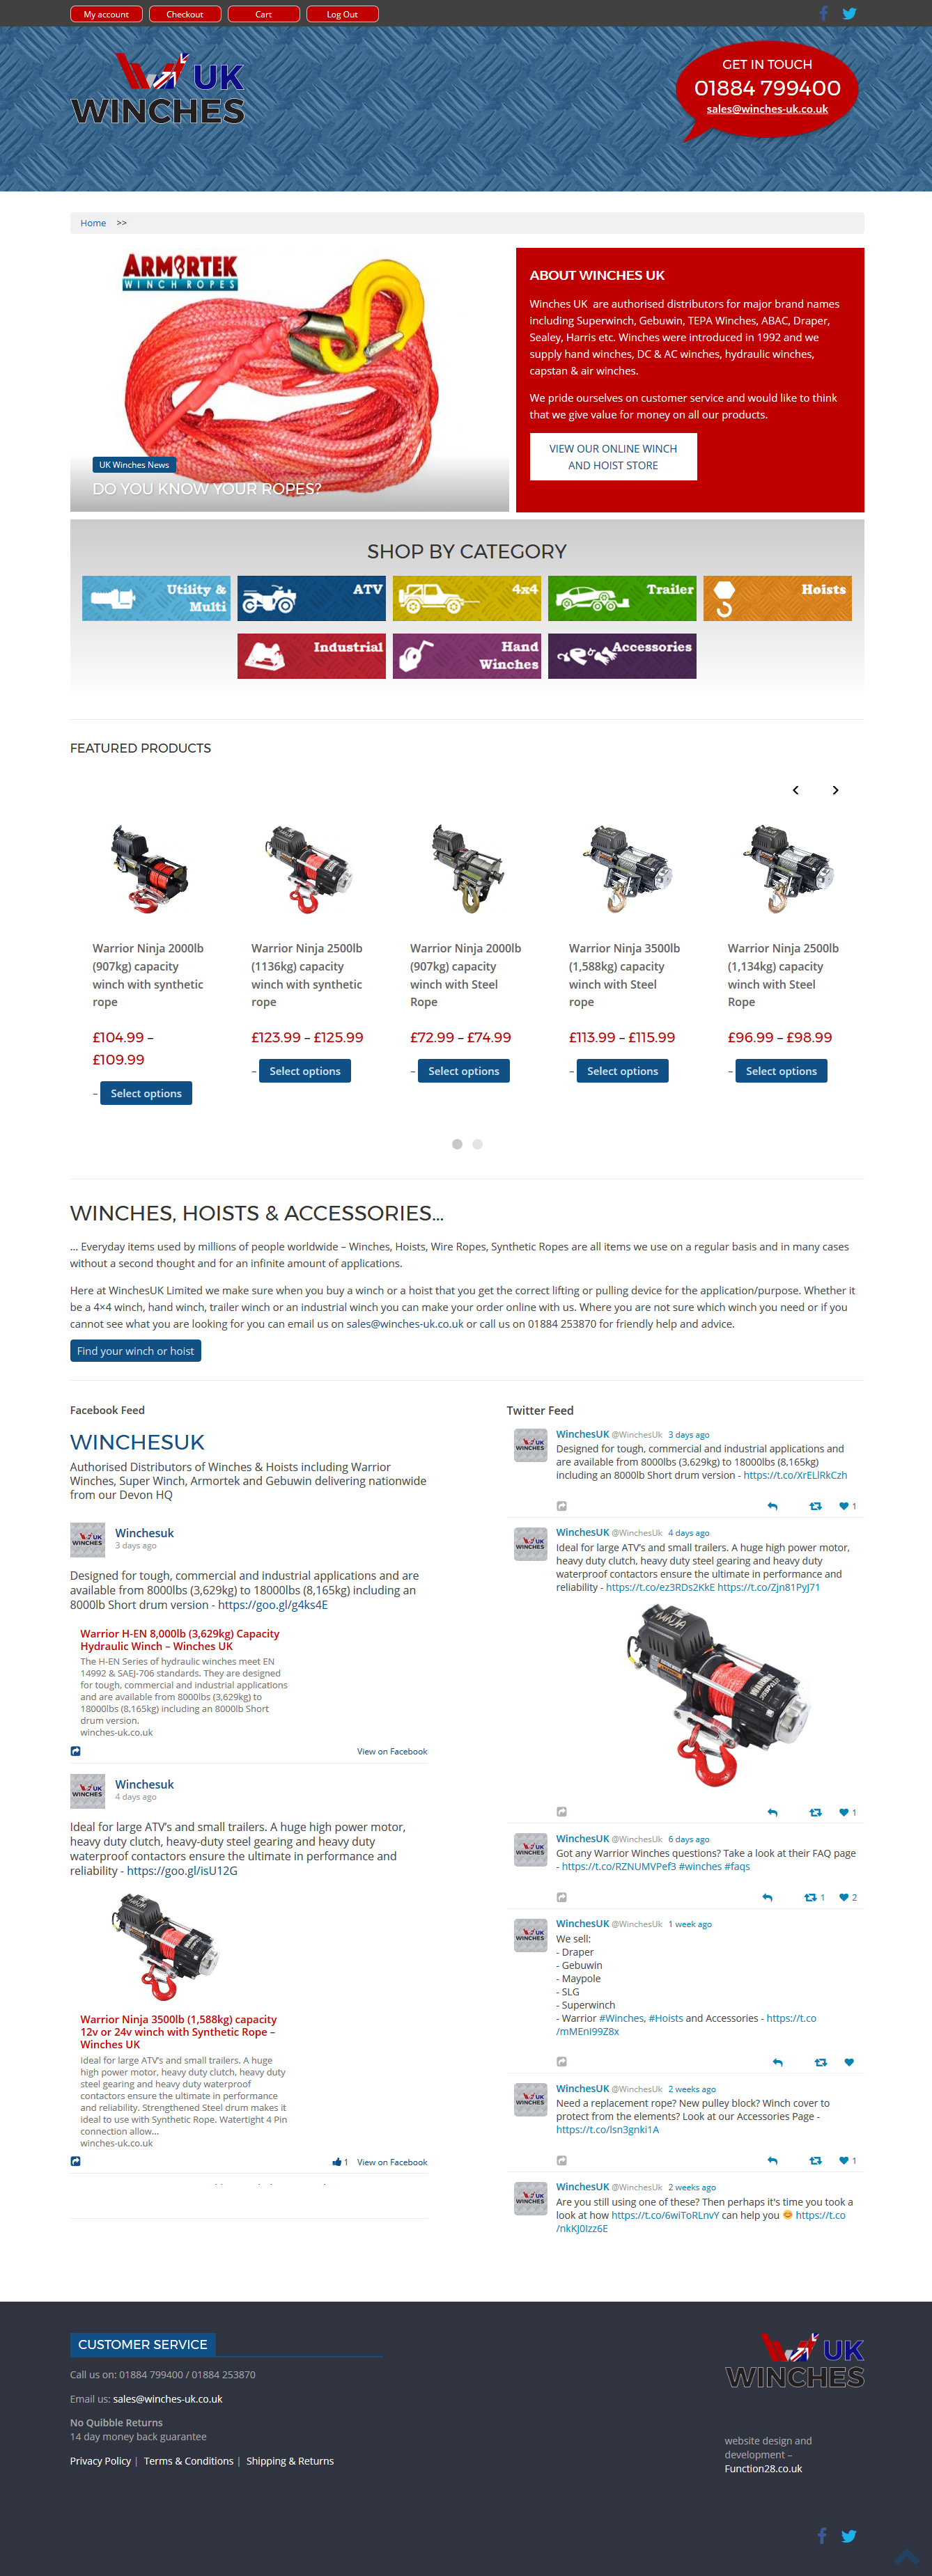 Devon website design development function28 limited winches uk winches uk is a full ecommerce website selling winches hoists and accessories the website is fully responsive and under ssl certificate xflitez Images